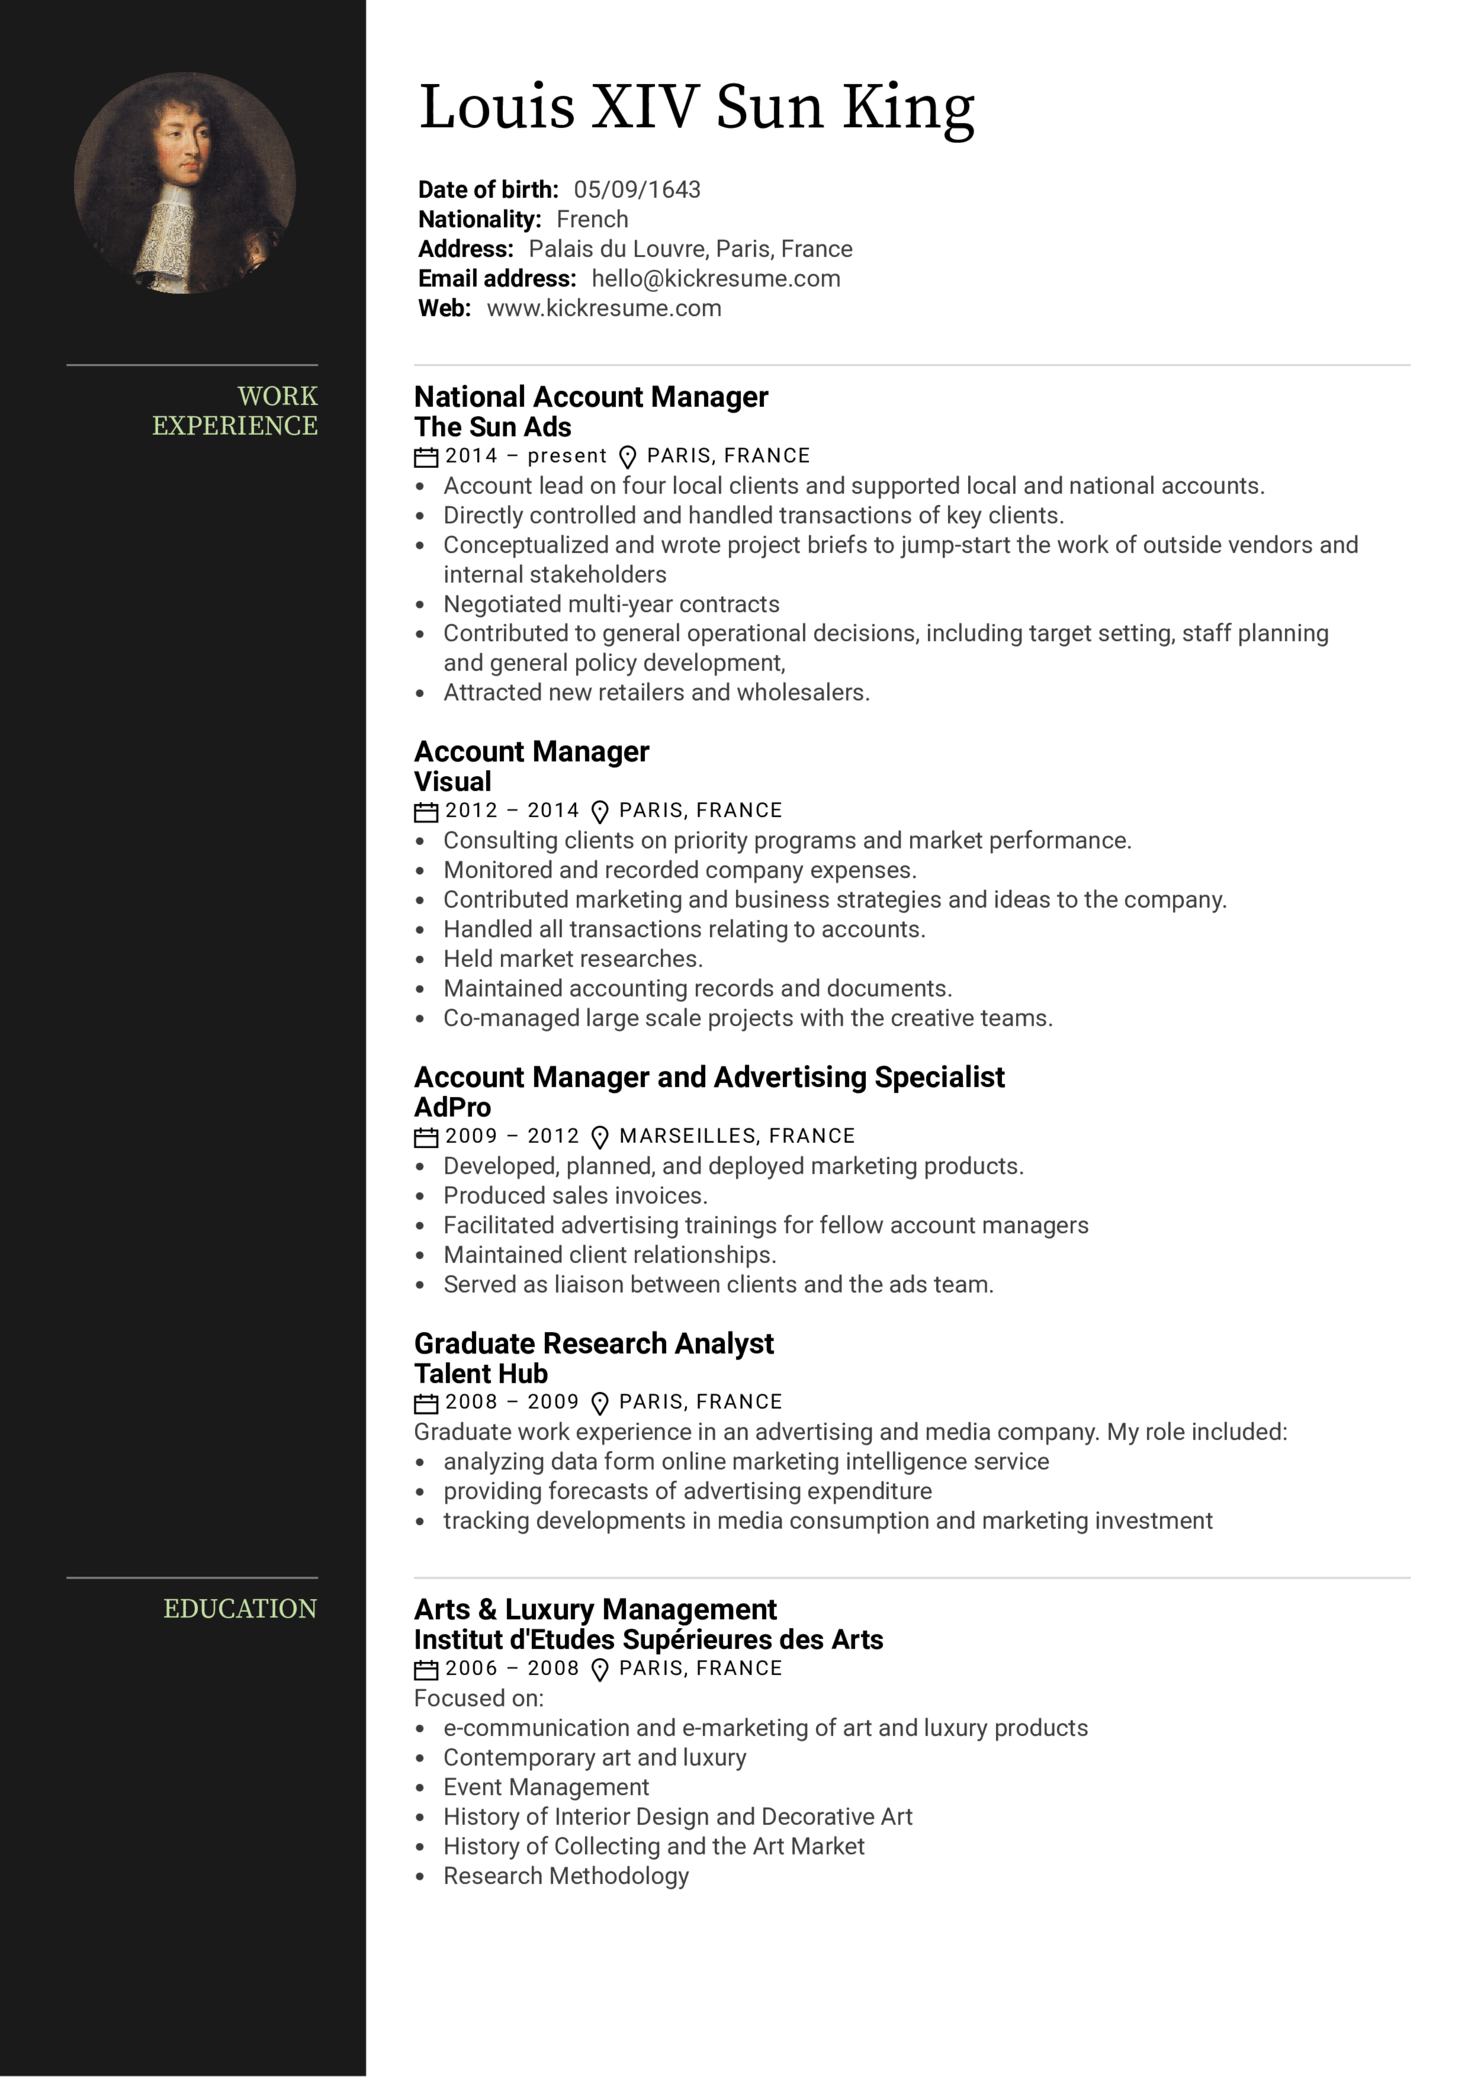 Advertising Account Manager Resume Sample (Part 1)